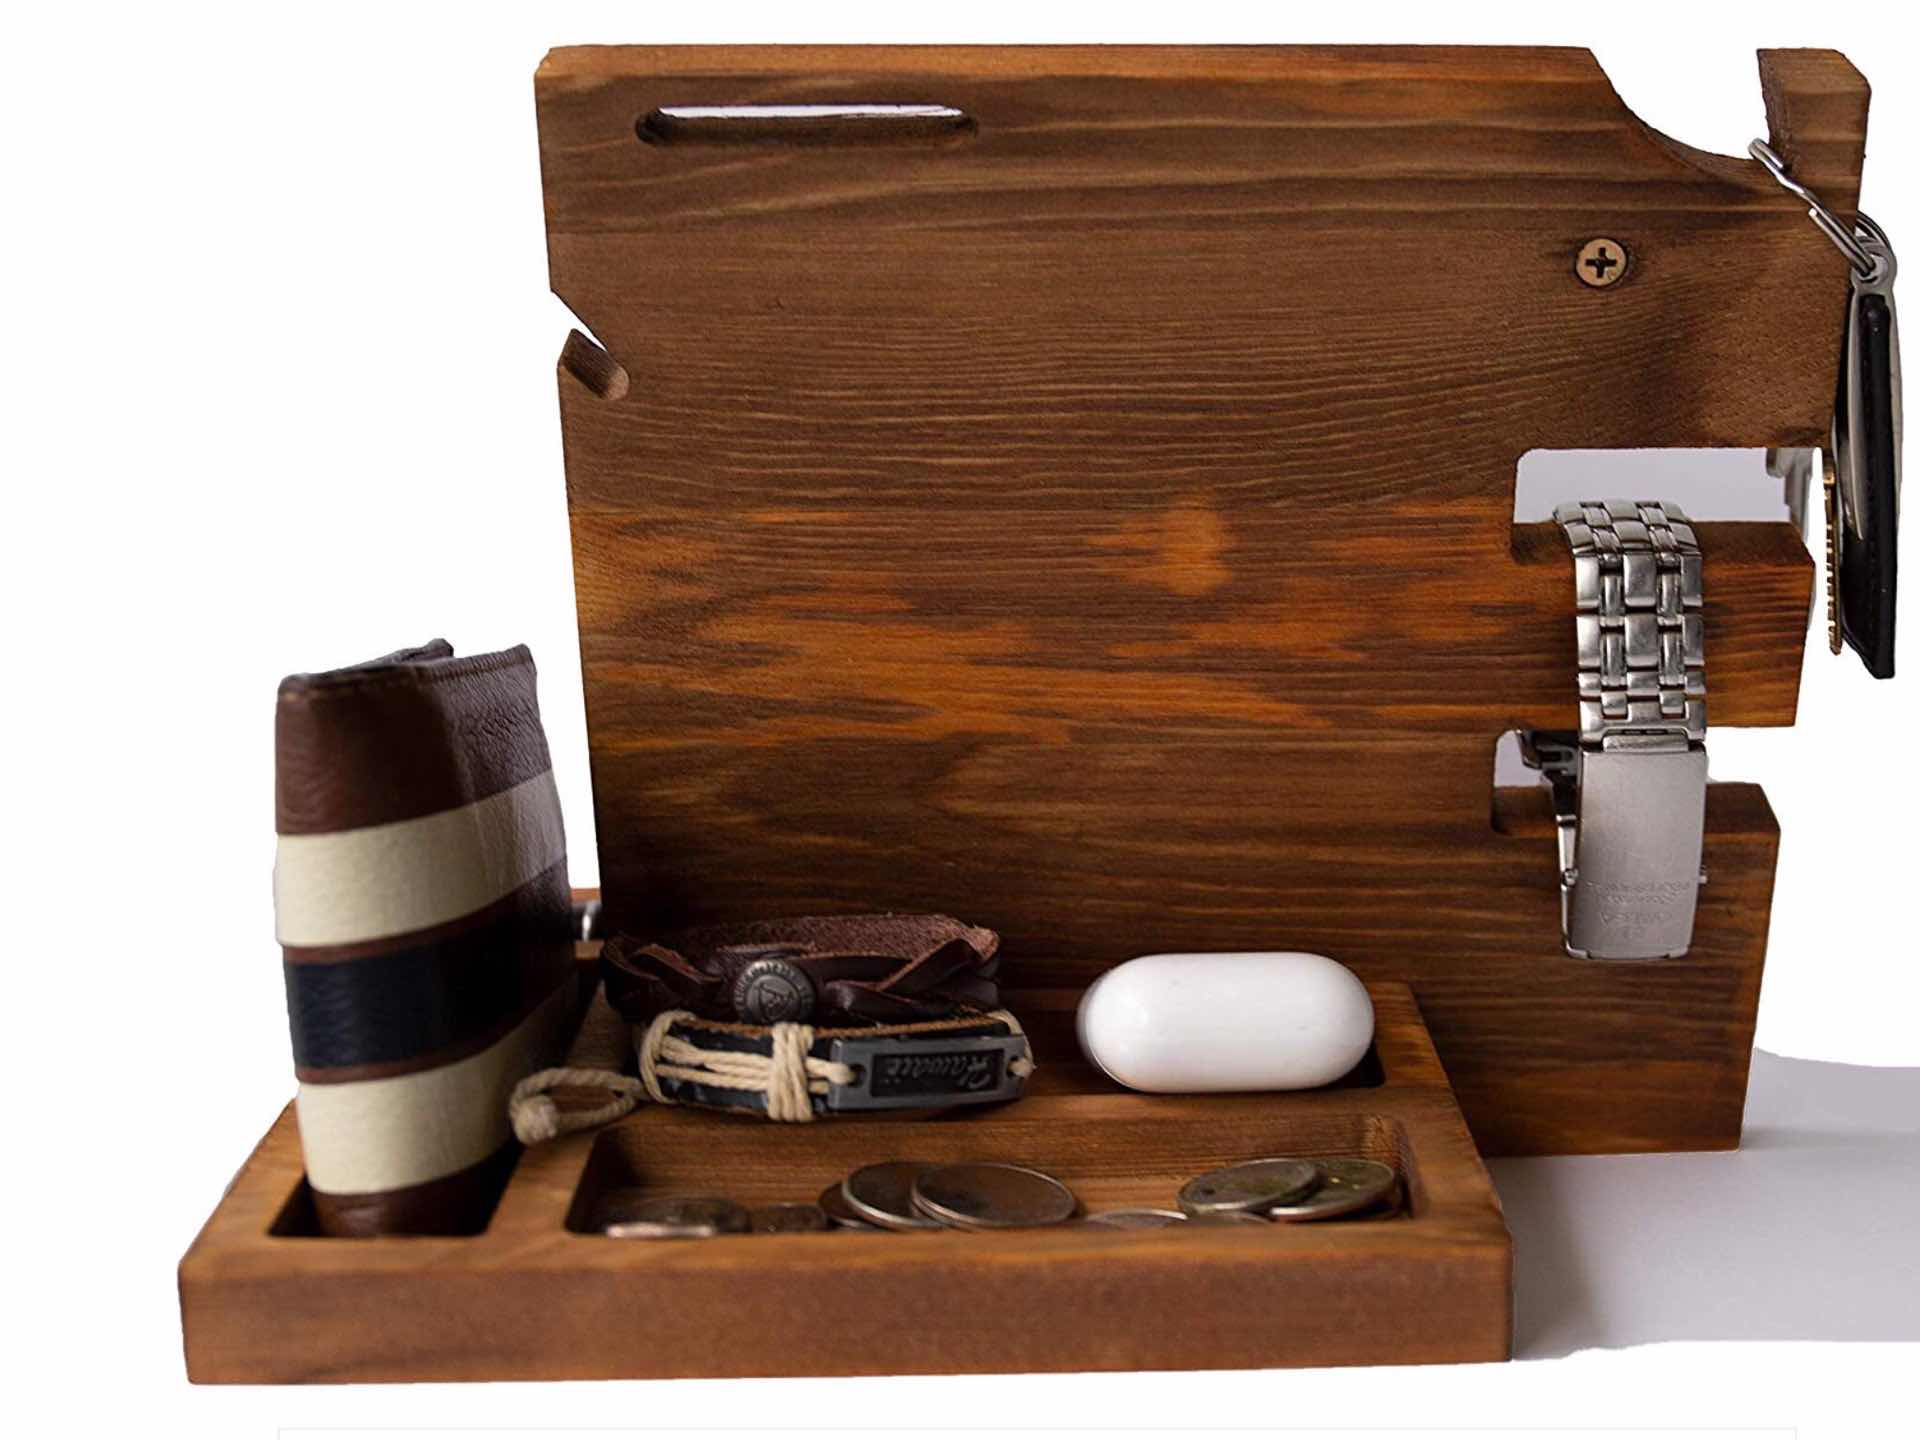 Peraco Wooden Docking Station Nightstand Organizer The